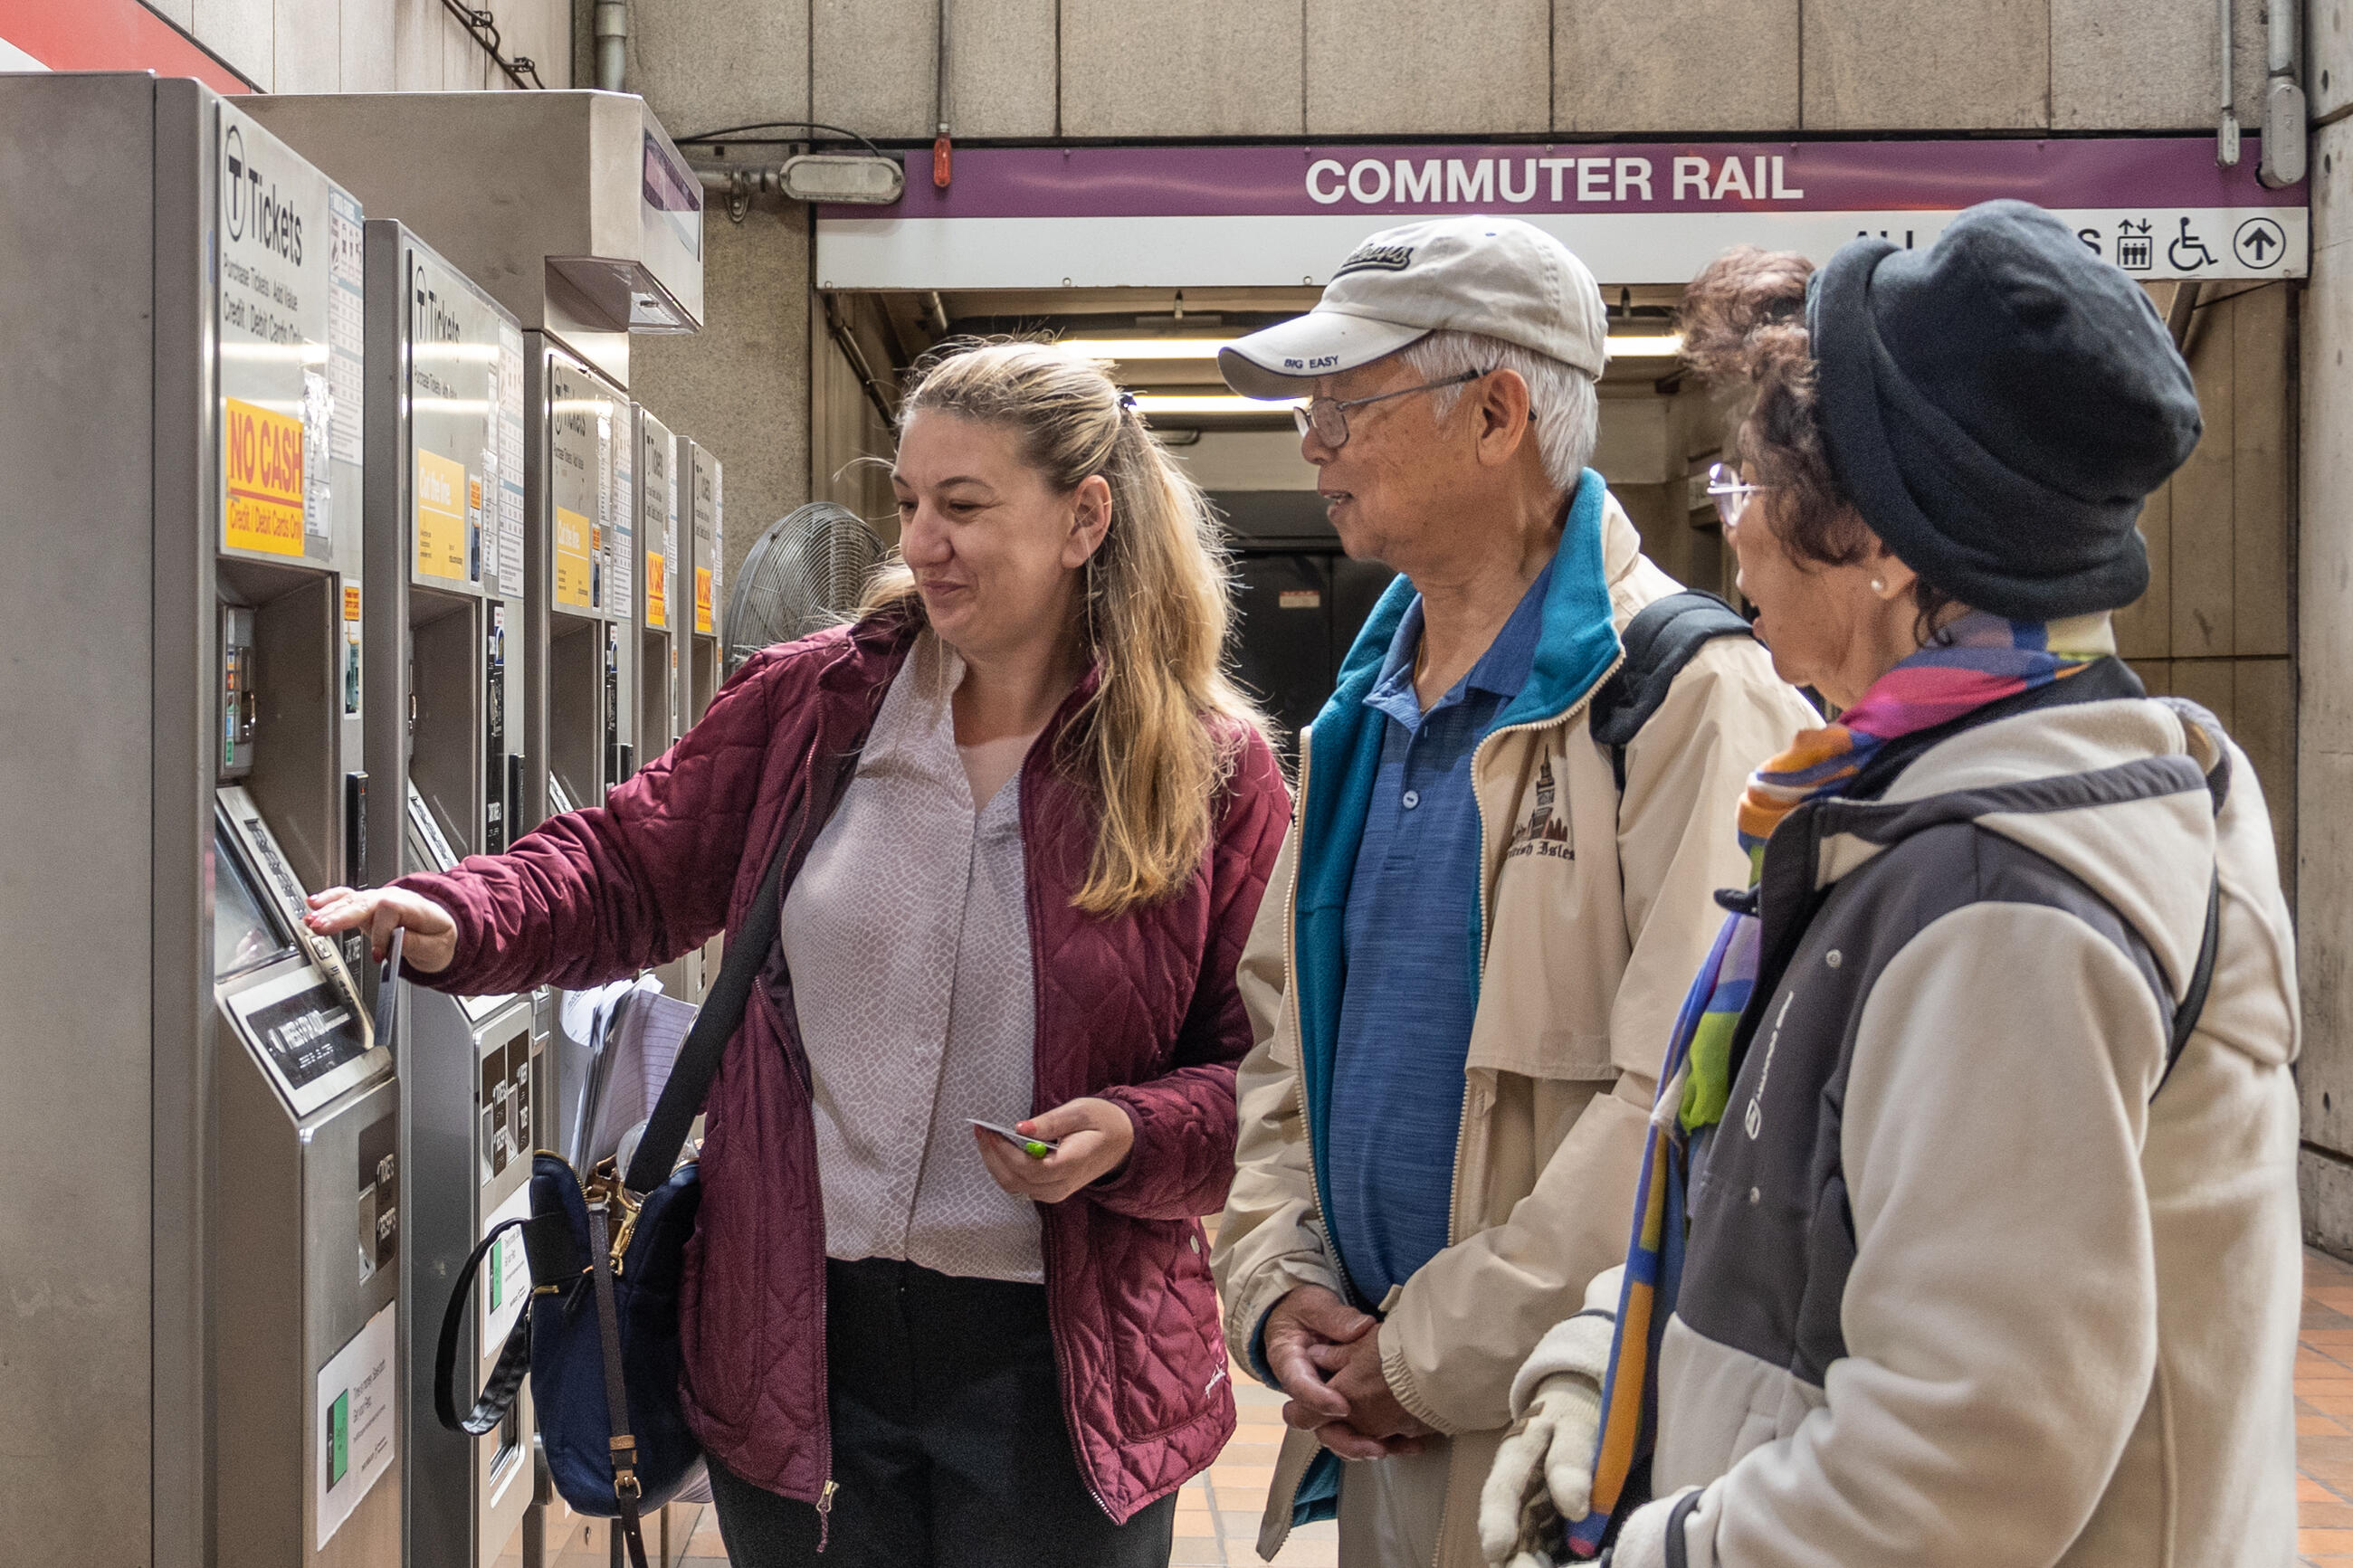 A woman helps two elderly riders purchase tickets at a commuter rail station